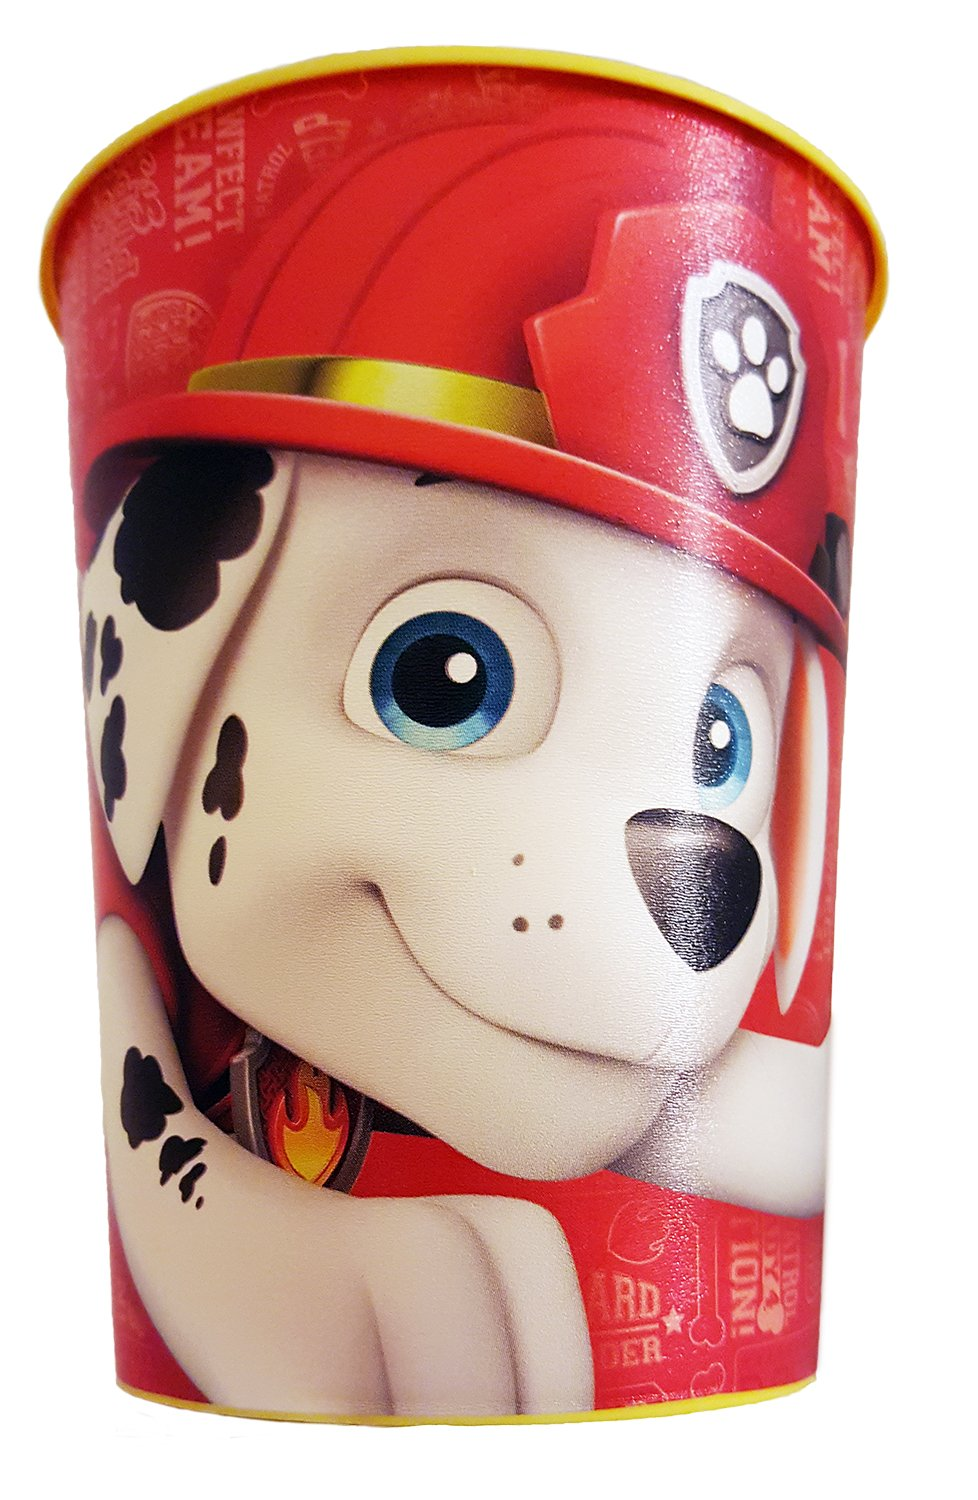 Paw Patrol Marshall Toothbrush & Toothpaste Bundle: 3 Items - Spinbrush Toothbrush, Orajel Bubble Berry Toothpaste, Kids Character Rinse Cup by Kids Marshall Dental Kit (Image #3)